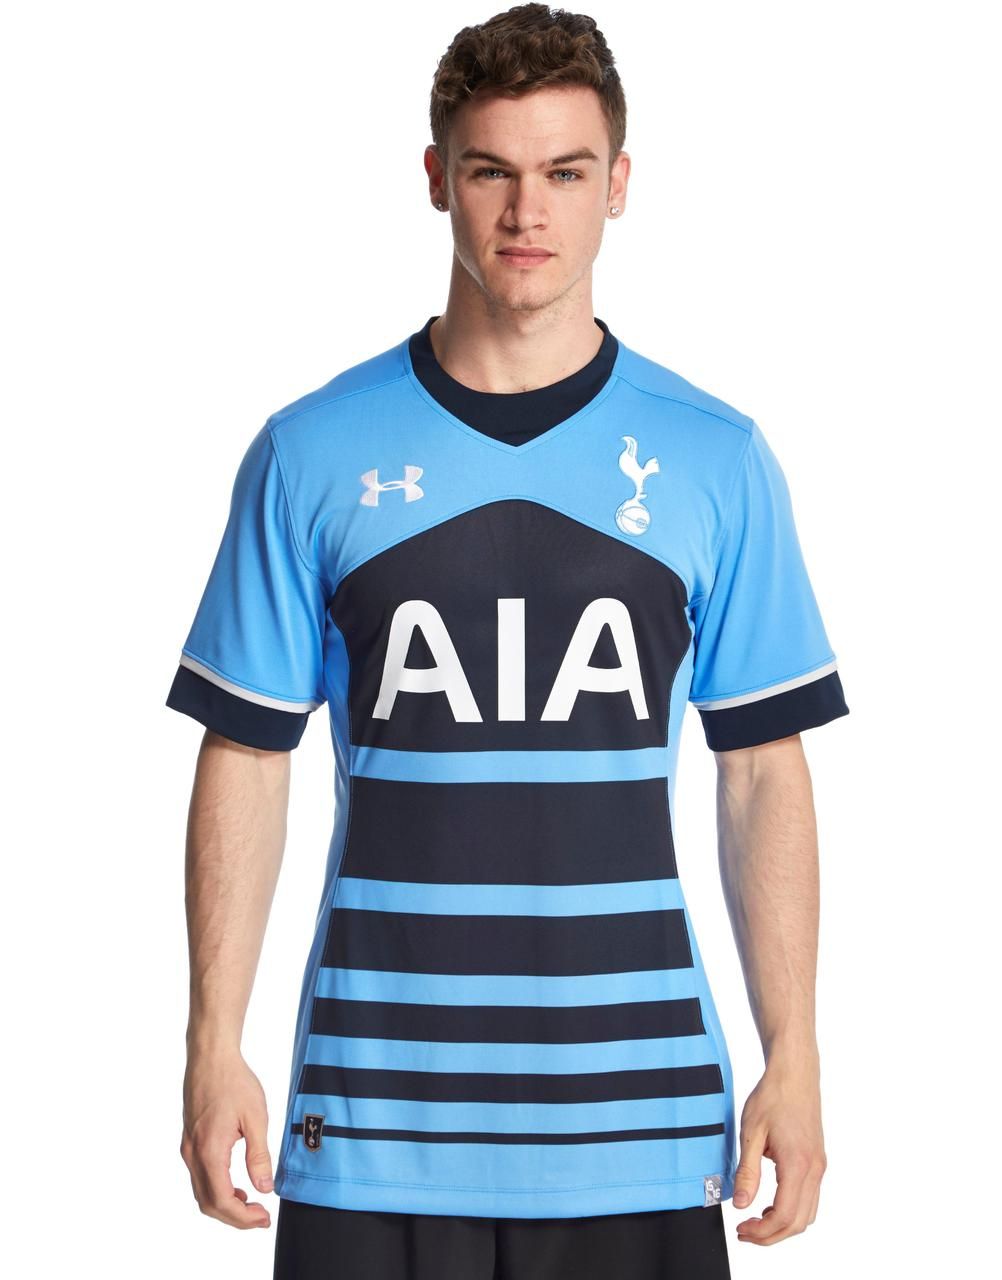 competitive price 2d885 252f1 Tottenham Hotspur 15/16 Under Armour Away Kit | 15/16 Kits ...